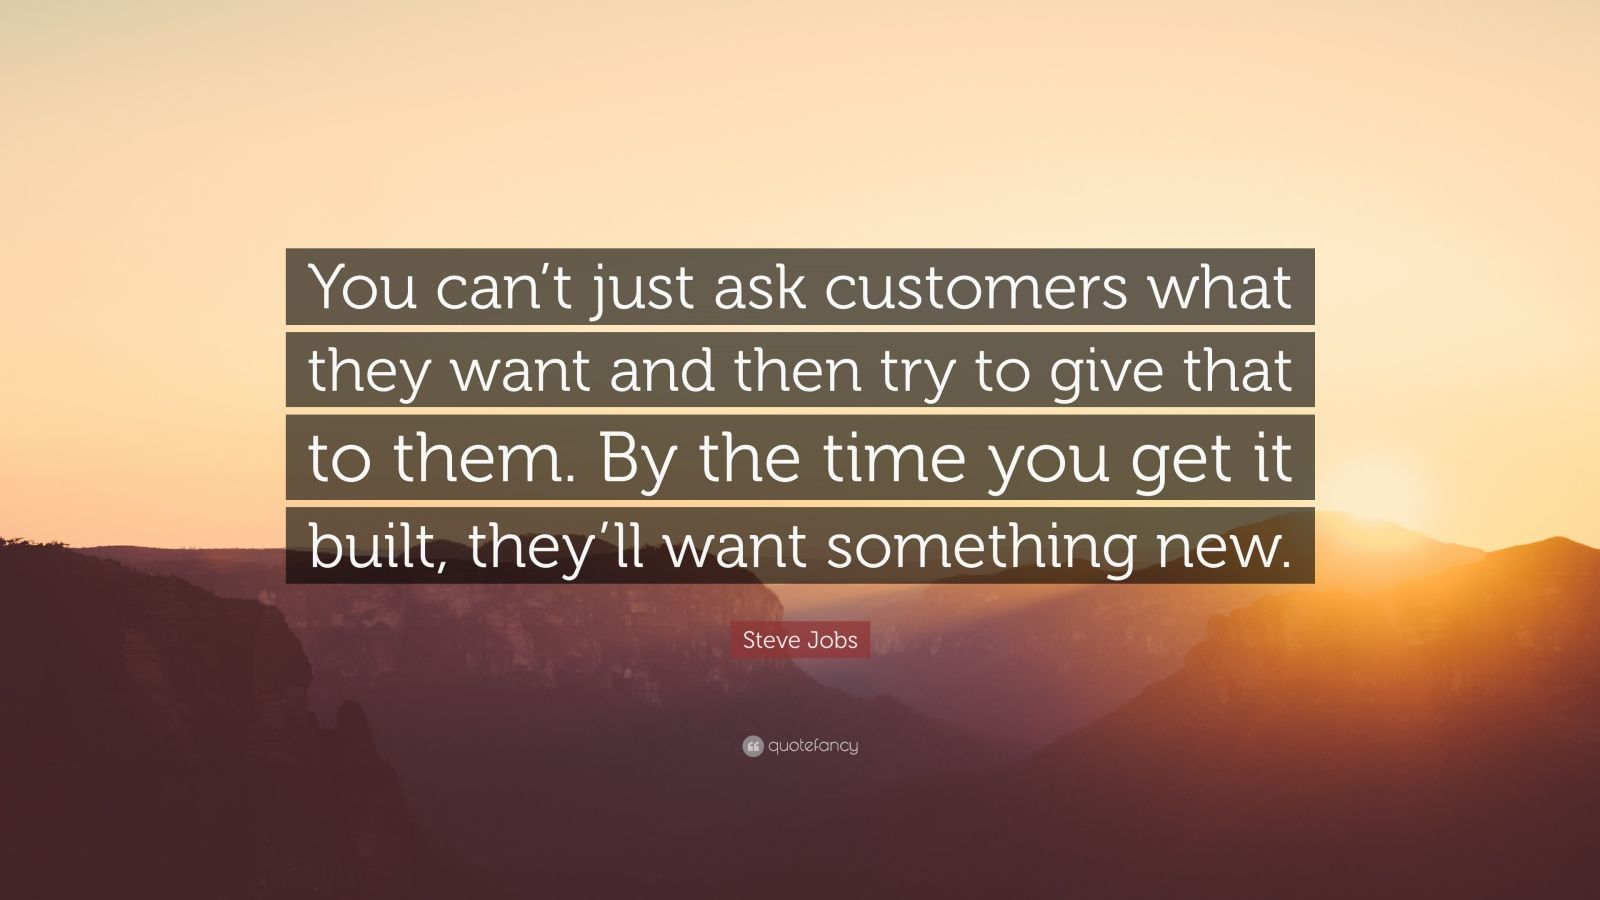 "Steve Jobs Quote: ""You can't just ask customers what they want and then try to give that to them. By the time you get it built, they'll want something new."""